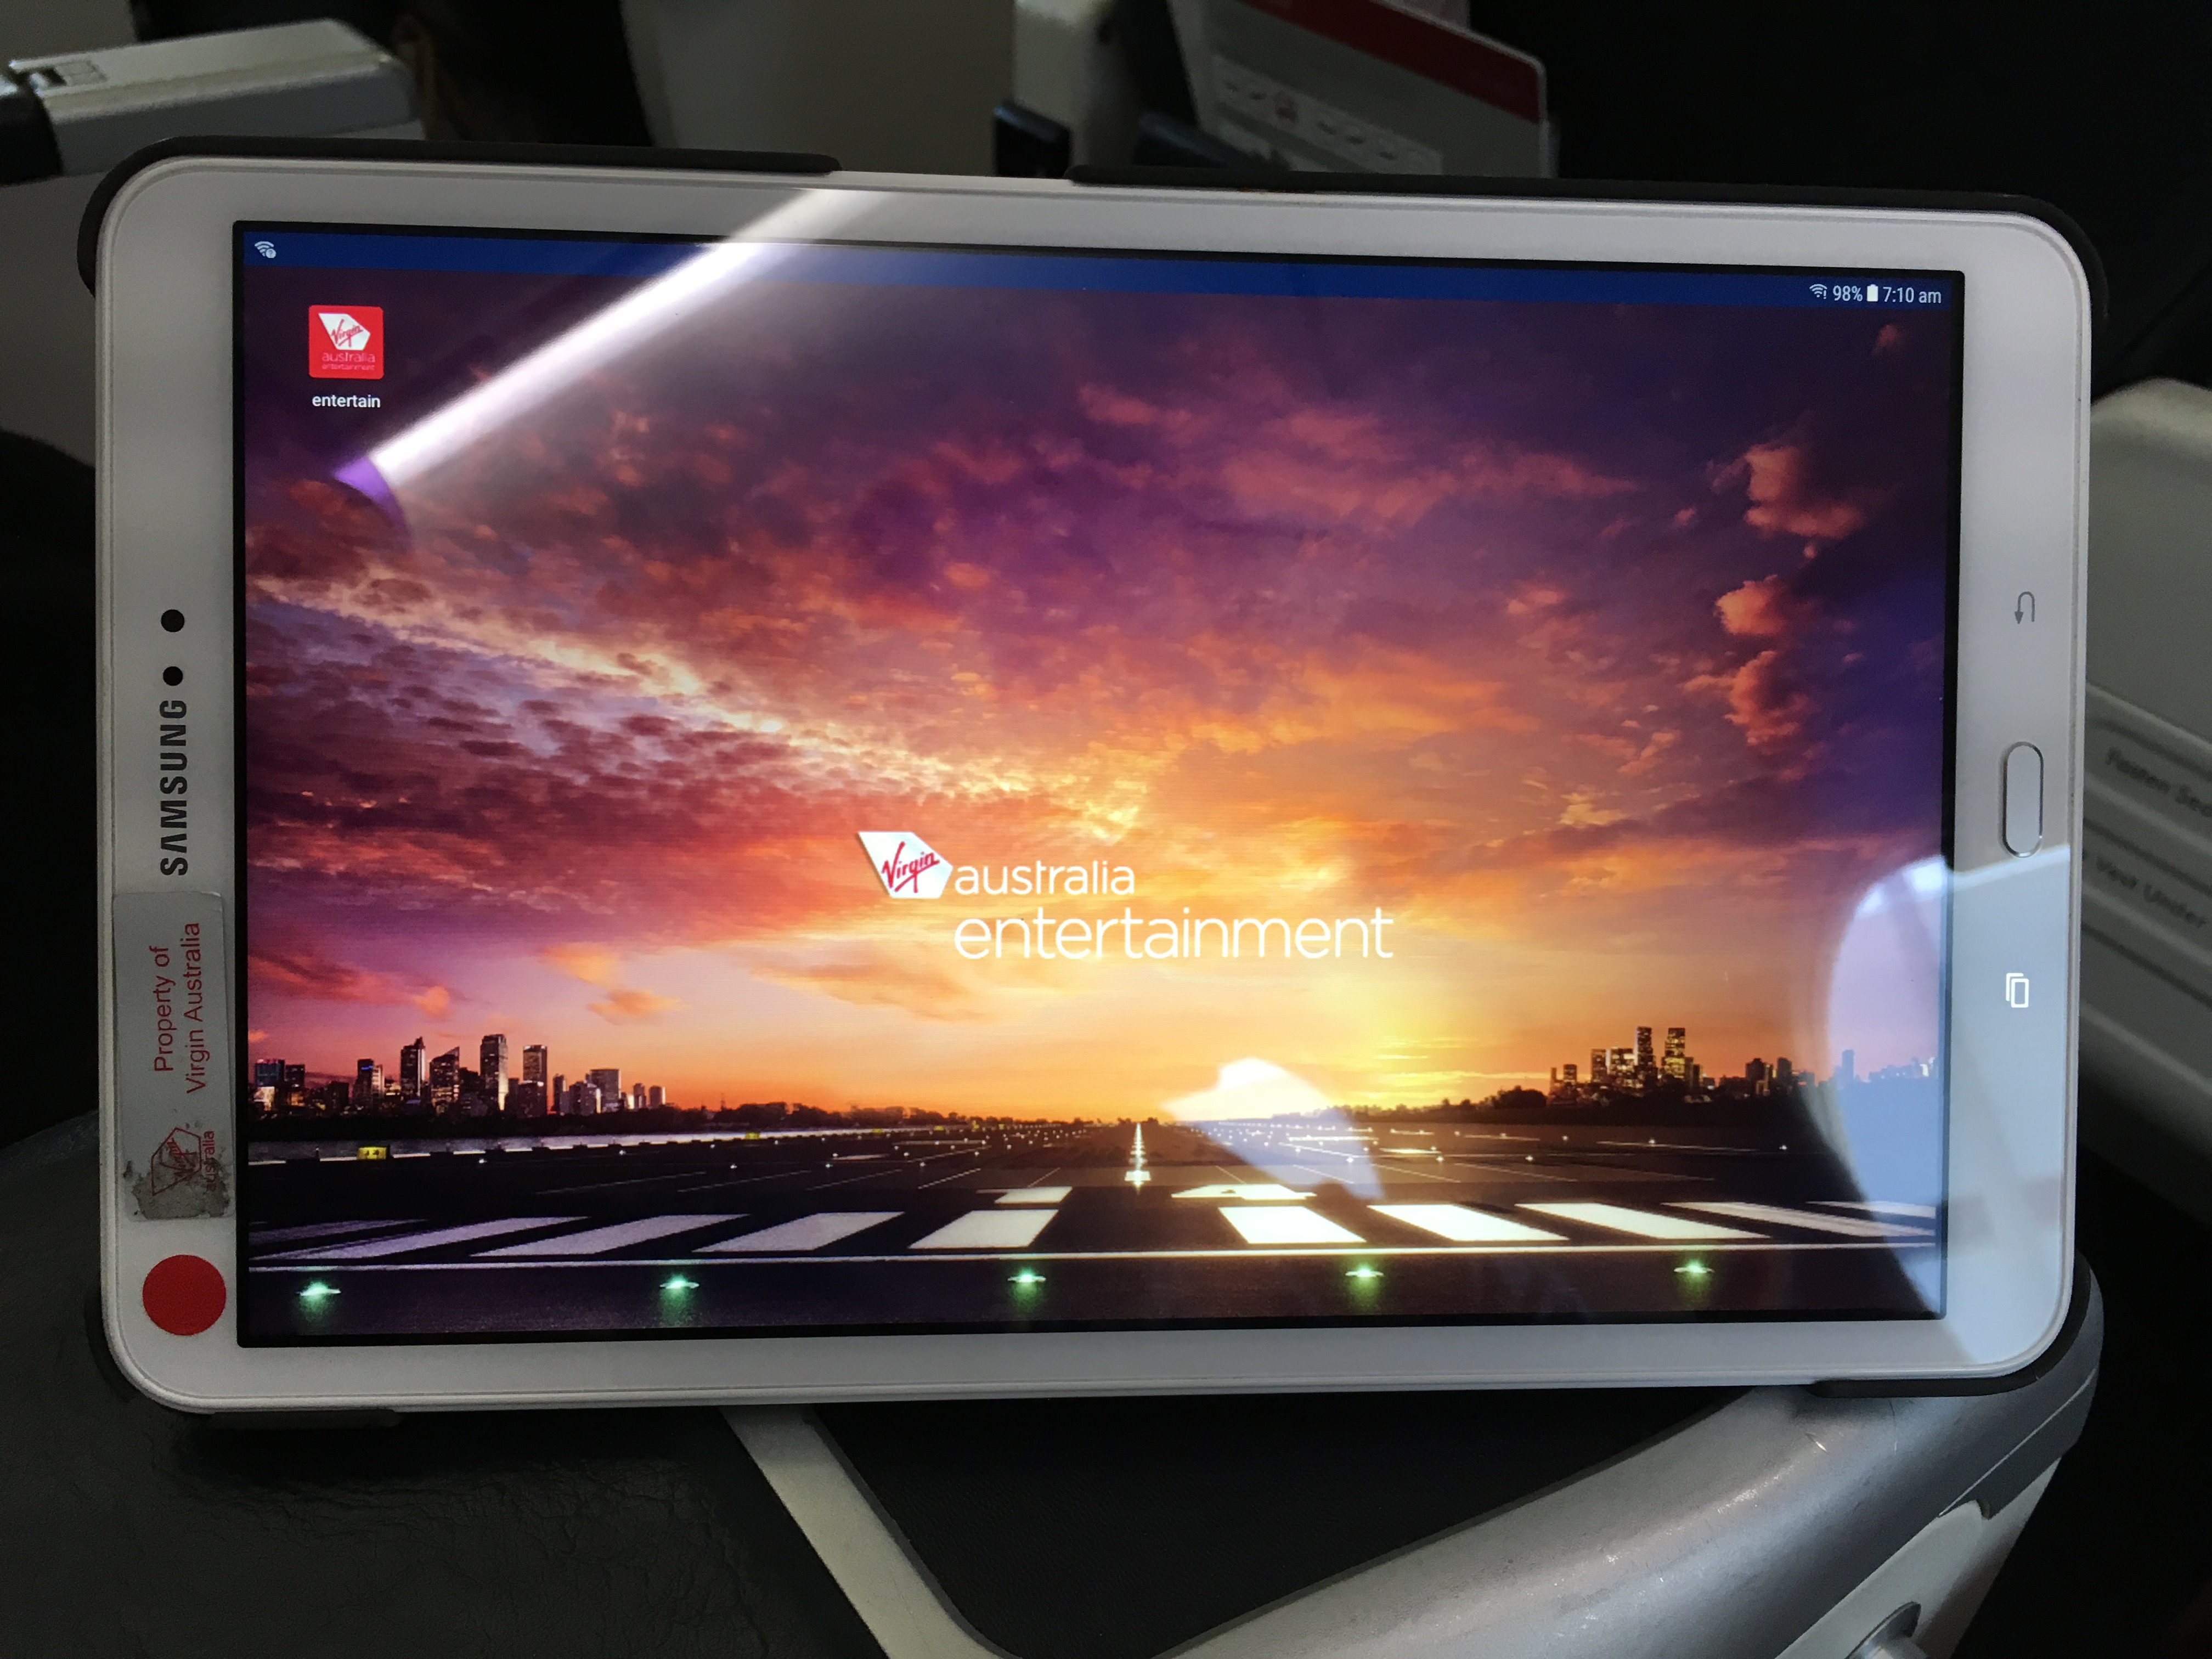 Virgin Australia Business Class inflight entertainment tablet